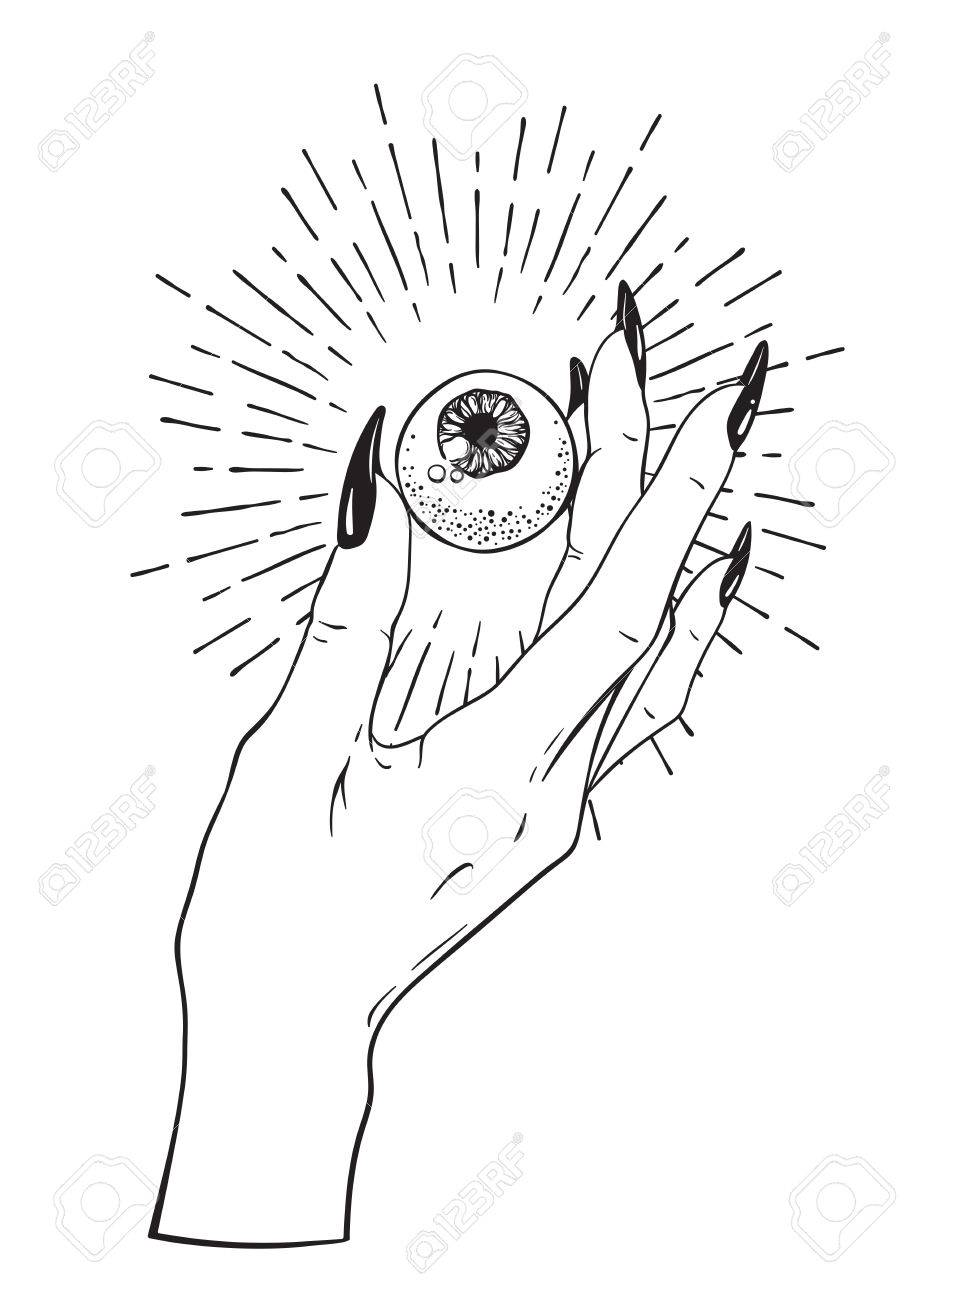 975x1300 Human Eyeball In Female Hand Isolated. Sticker, Print Or Blackwork